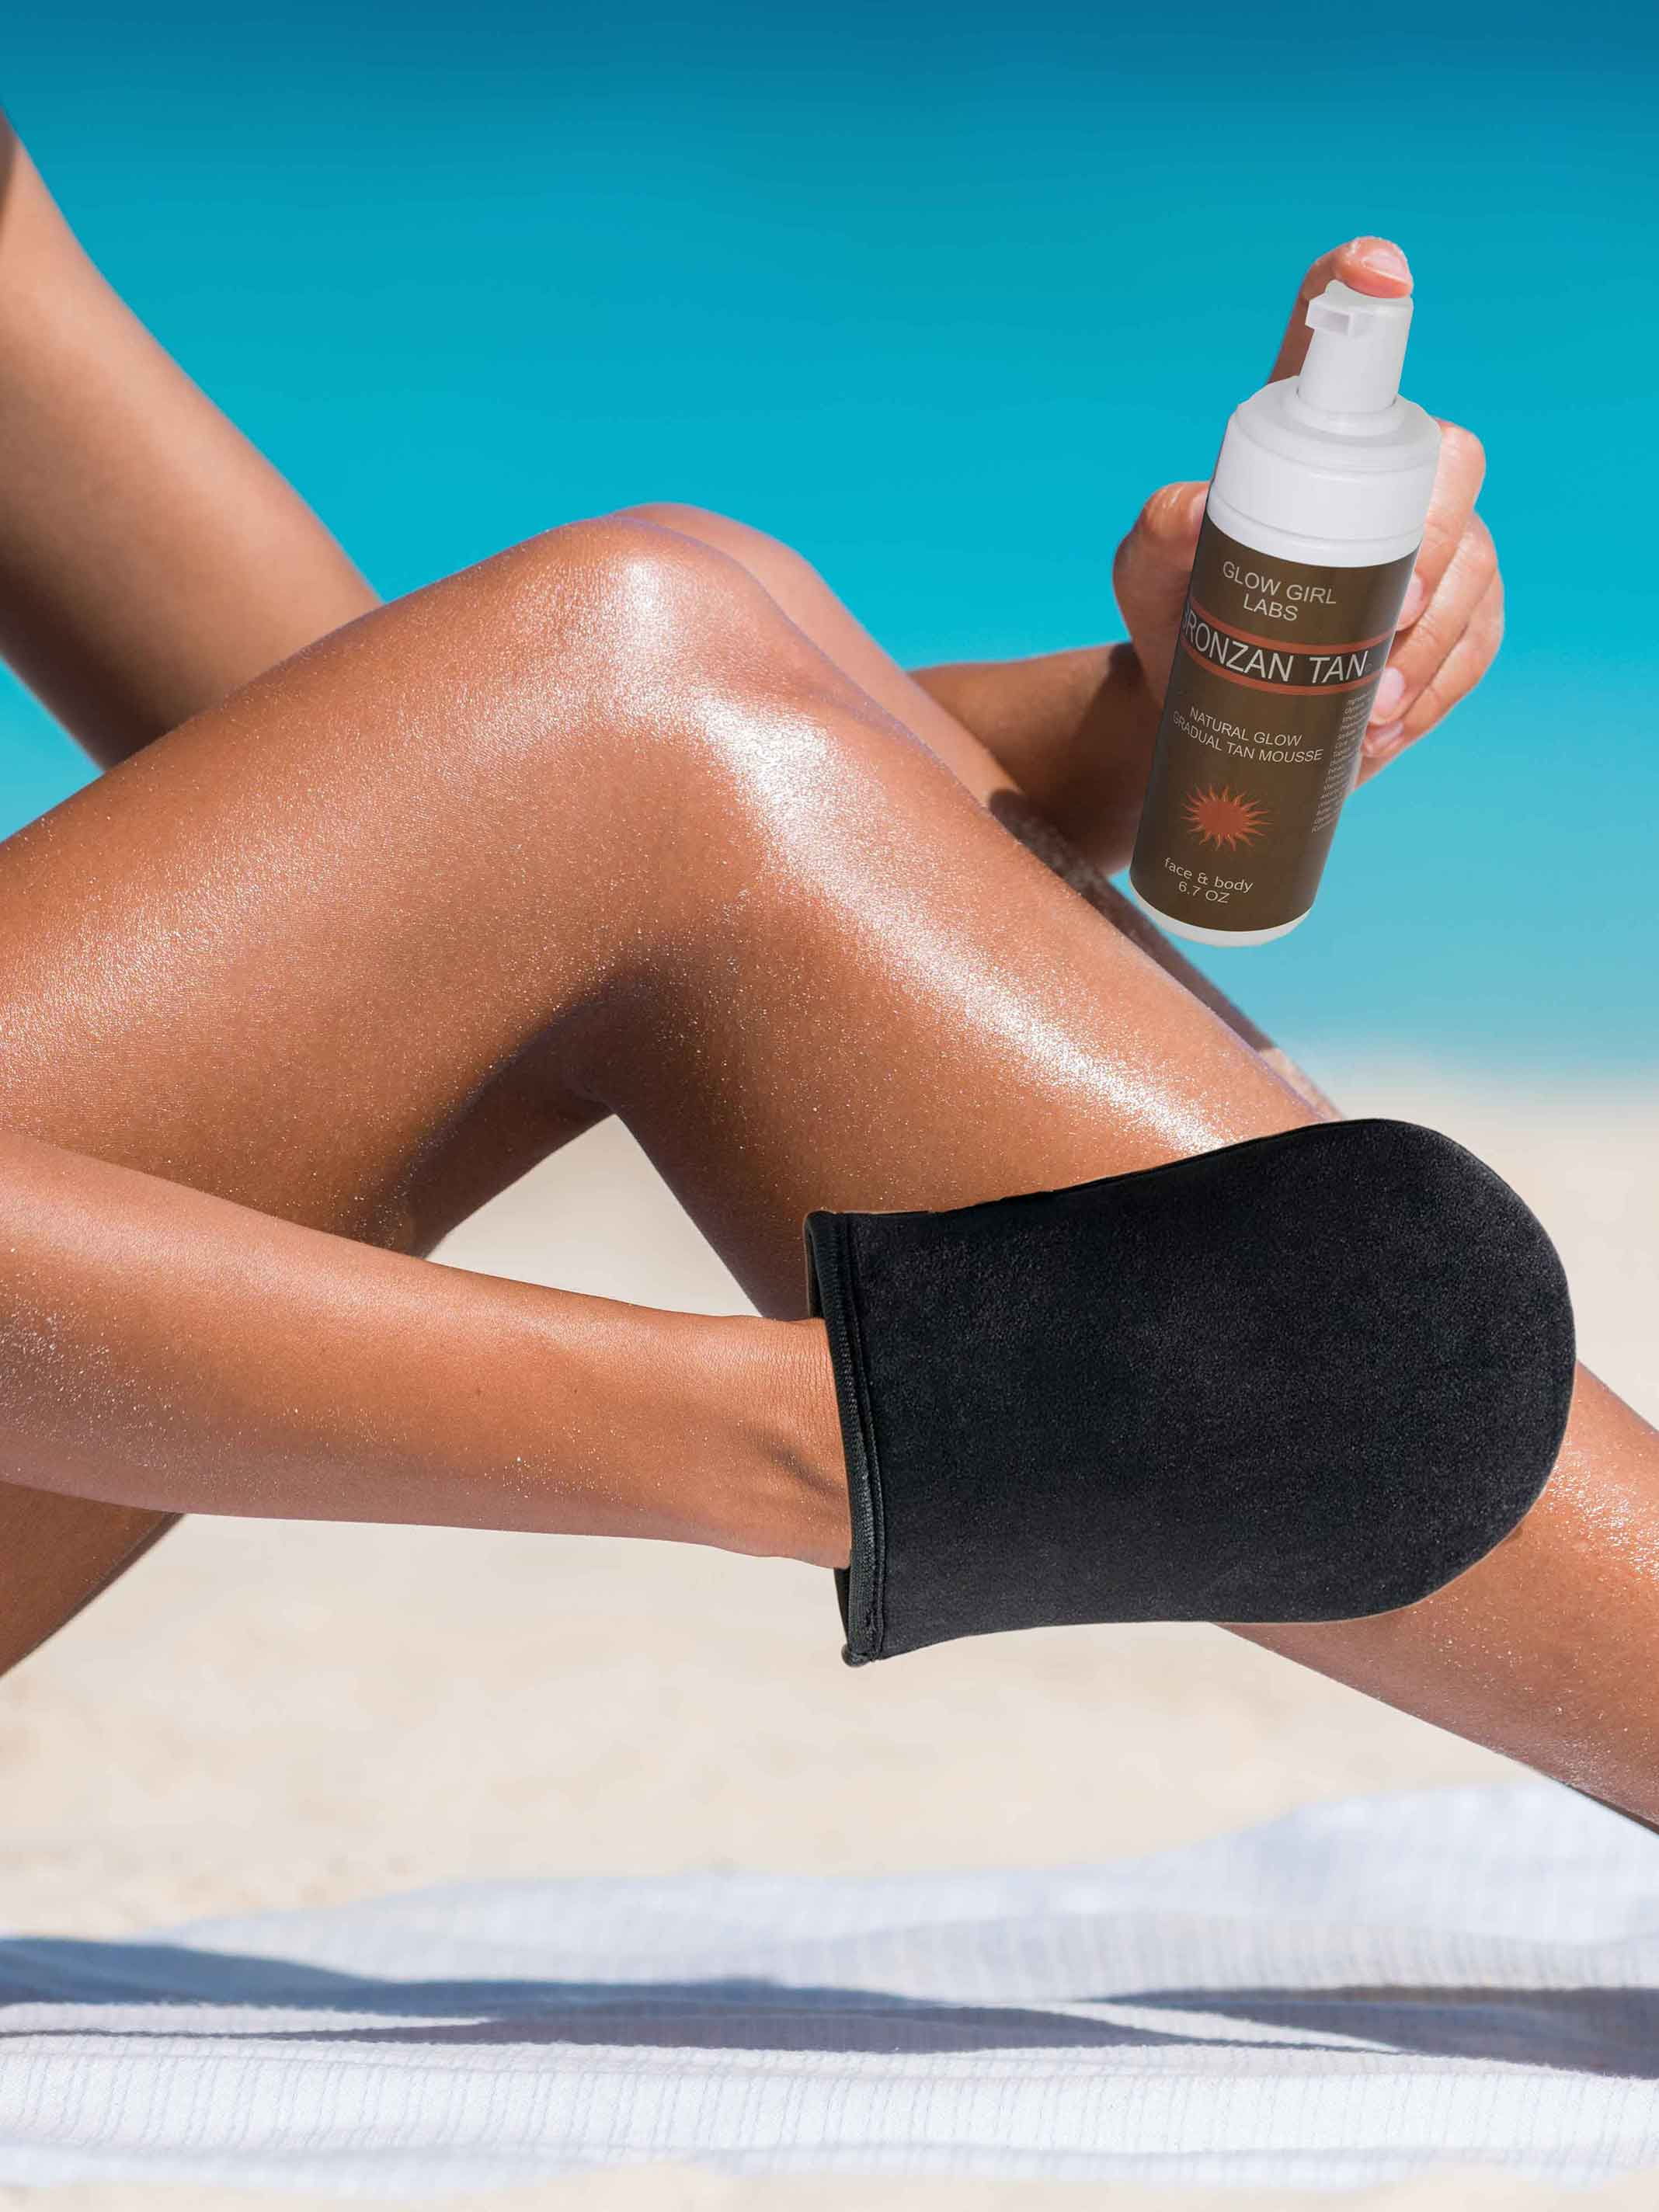 BRONZAN TAN SELF TAN APPLICATION MITT - BRONZAN TAN